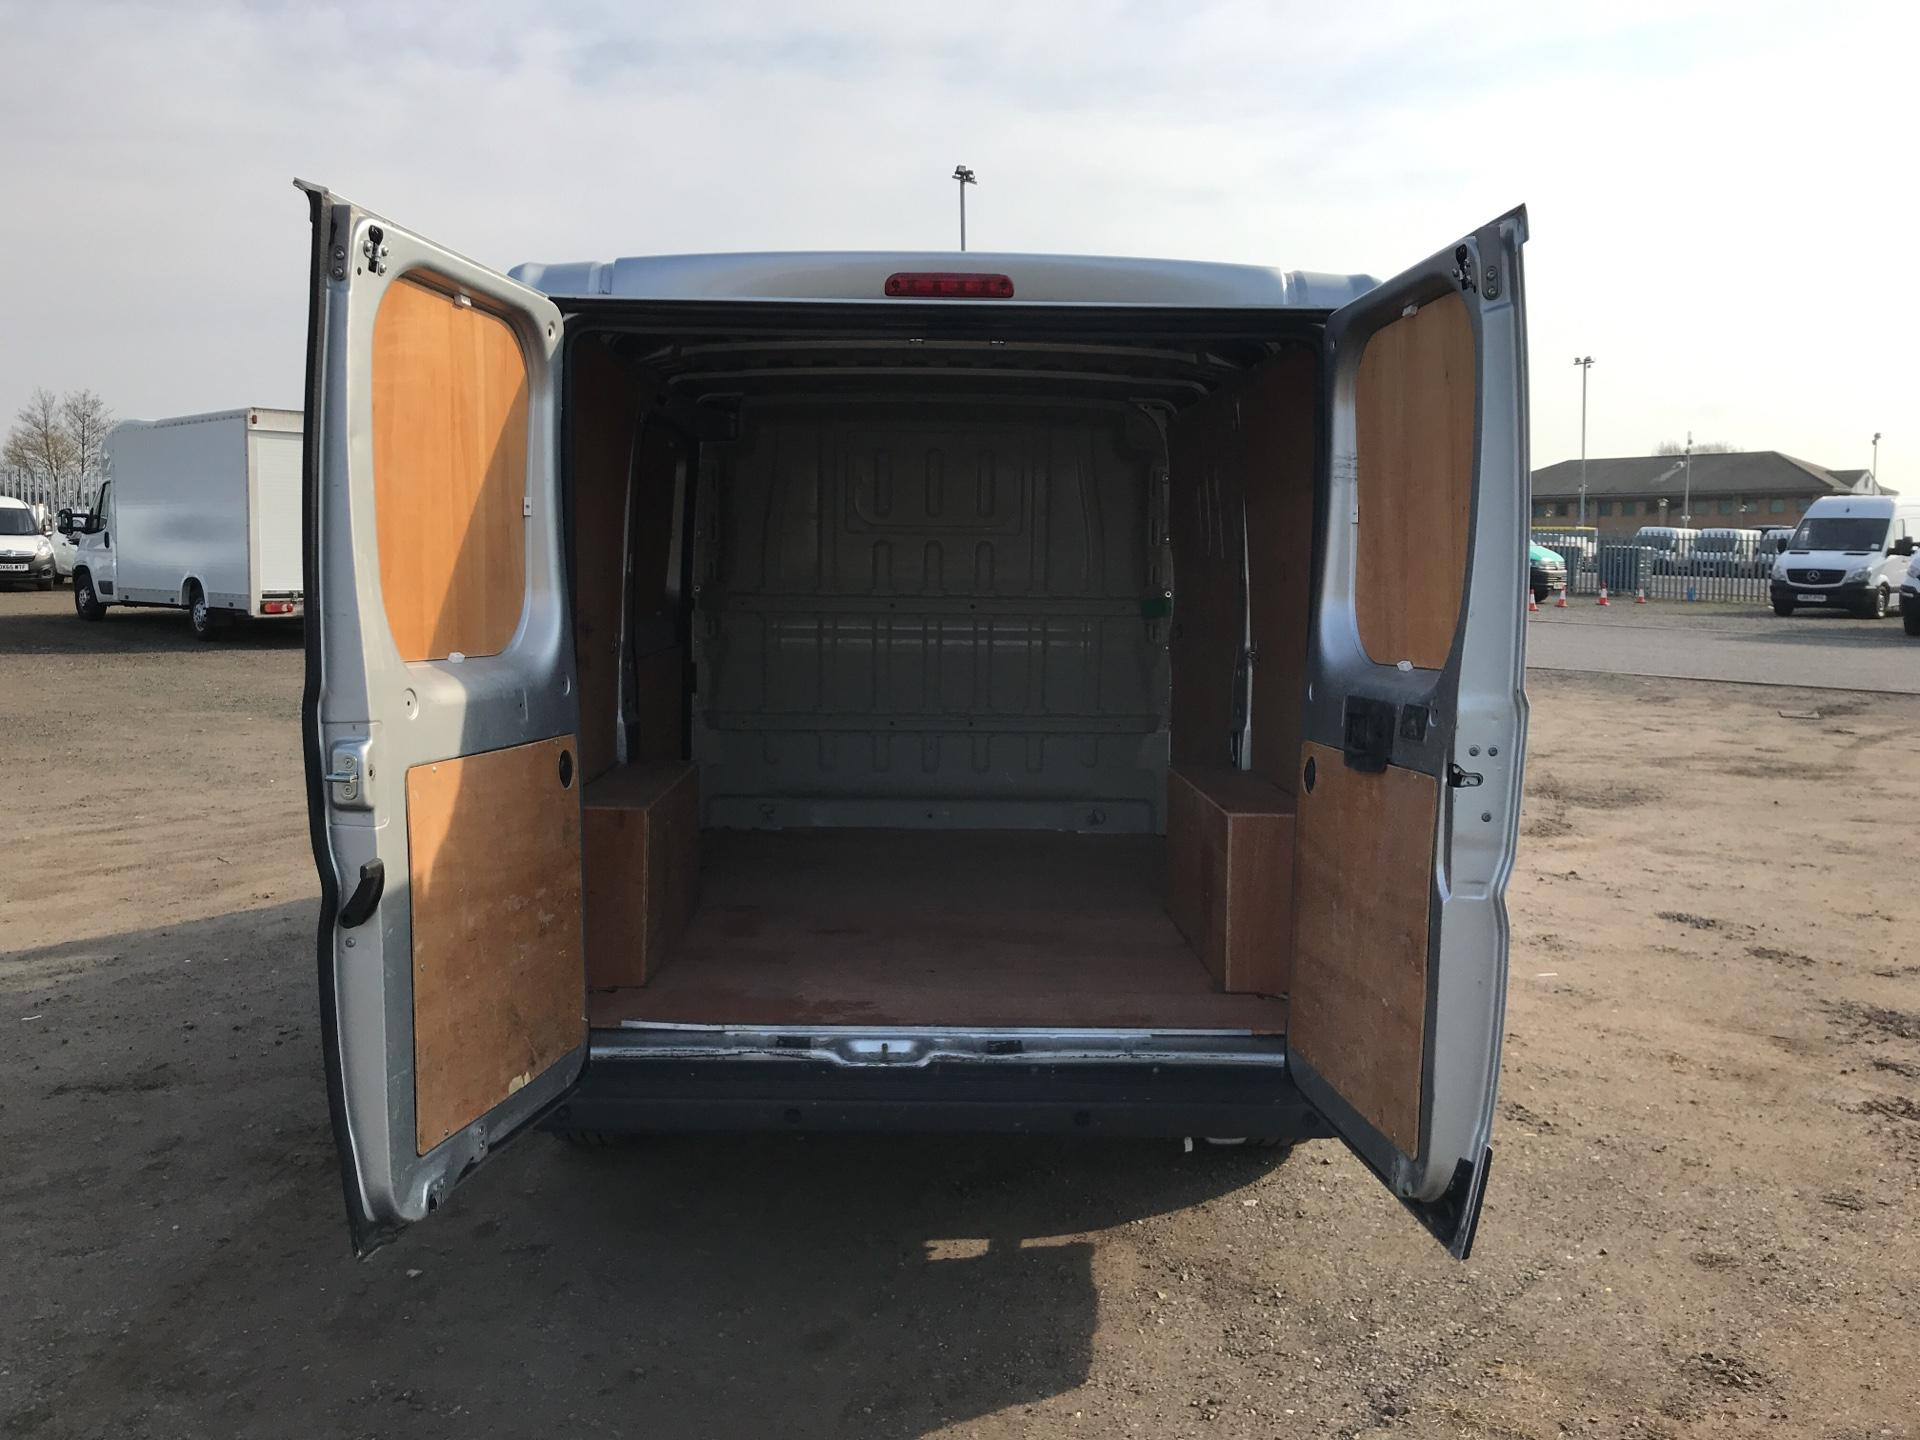 2016 Peugeot Boxer 2.0 Bluehdi H1  Professional Van 110Ps *VALUE RANGE VEHICLE CONDITION REFLECTED IN PRICE* (NG16NMO) Image 15